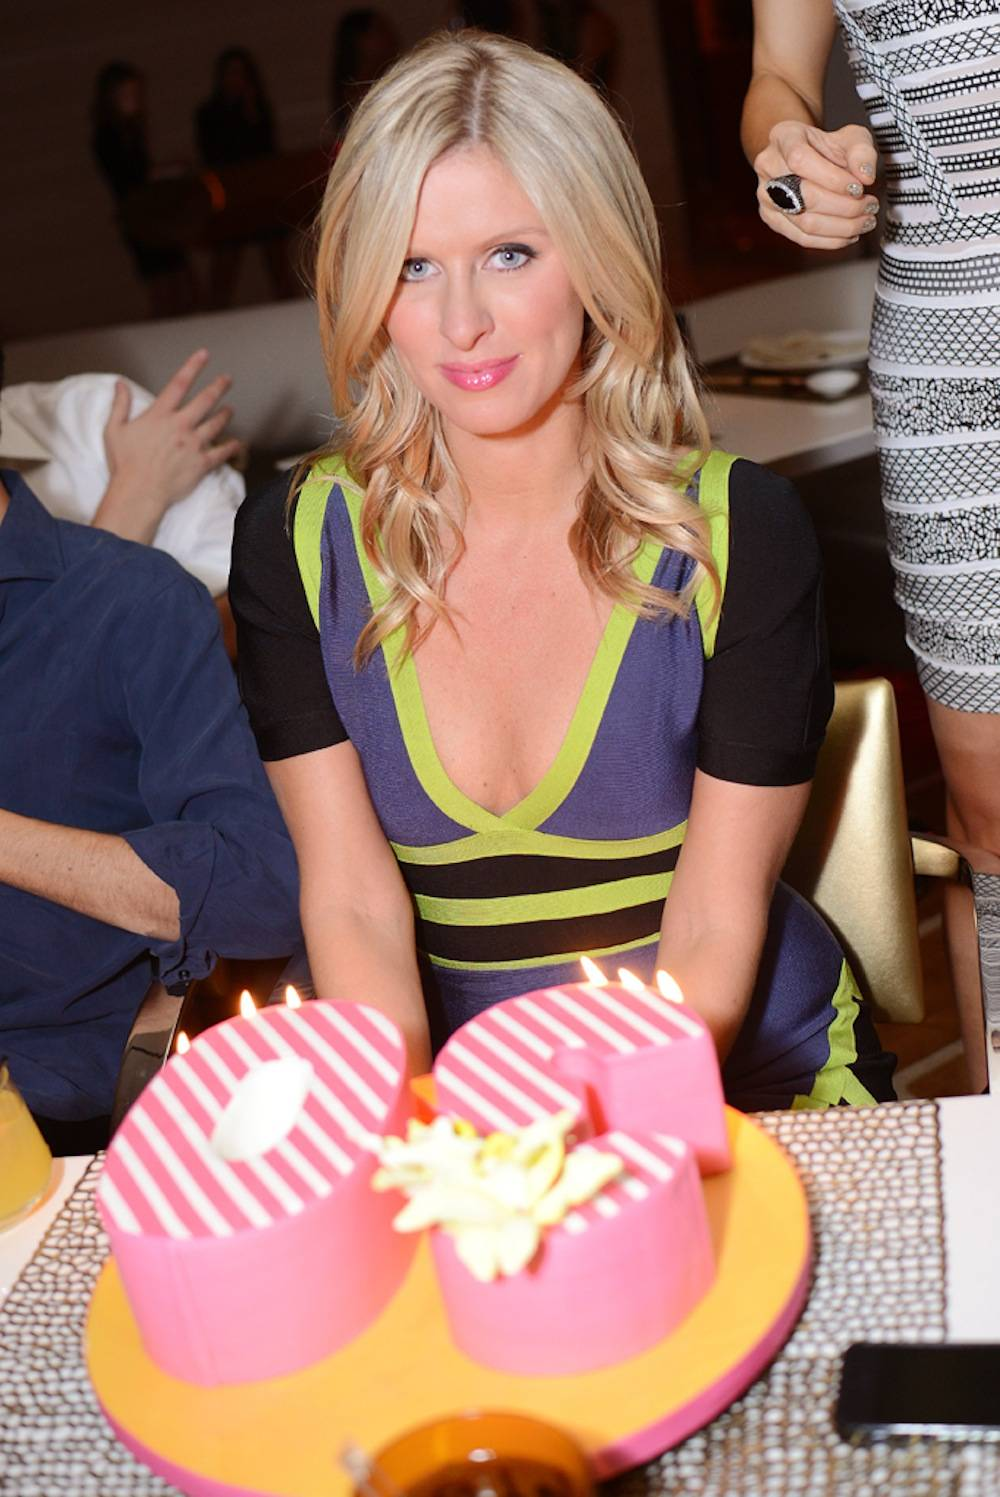 Nicki Hilton celebrates her 30th birthday at Andrea's. Photos: Aaron Garcia